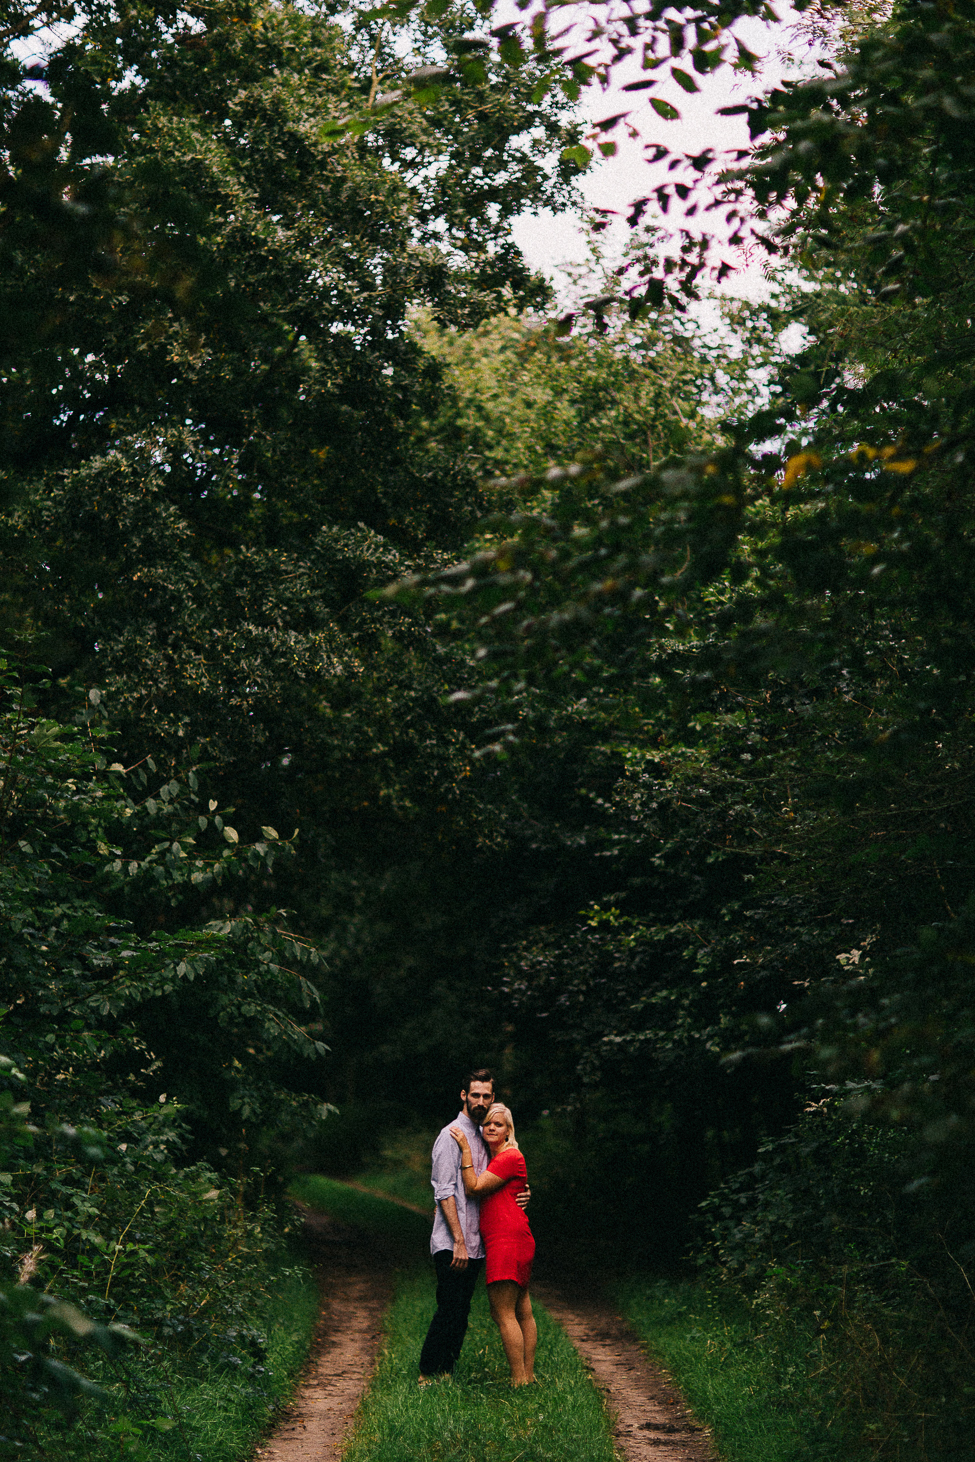 An intimate session with a Danish couple from a Copenhangen wedding venue.